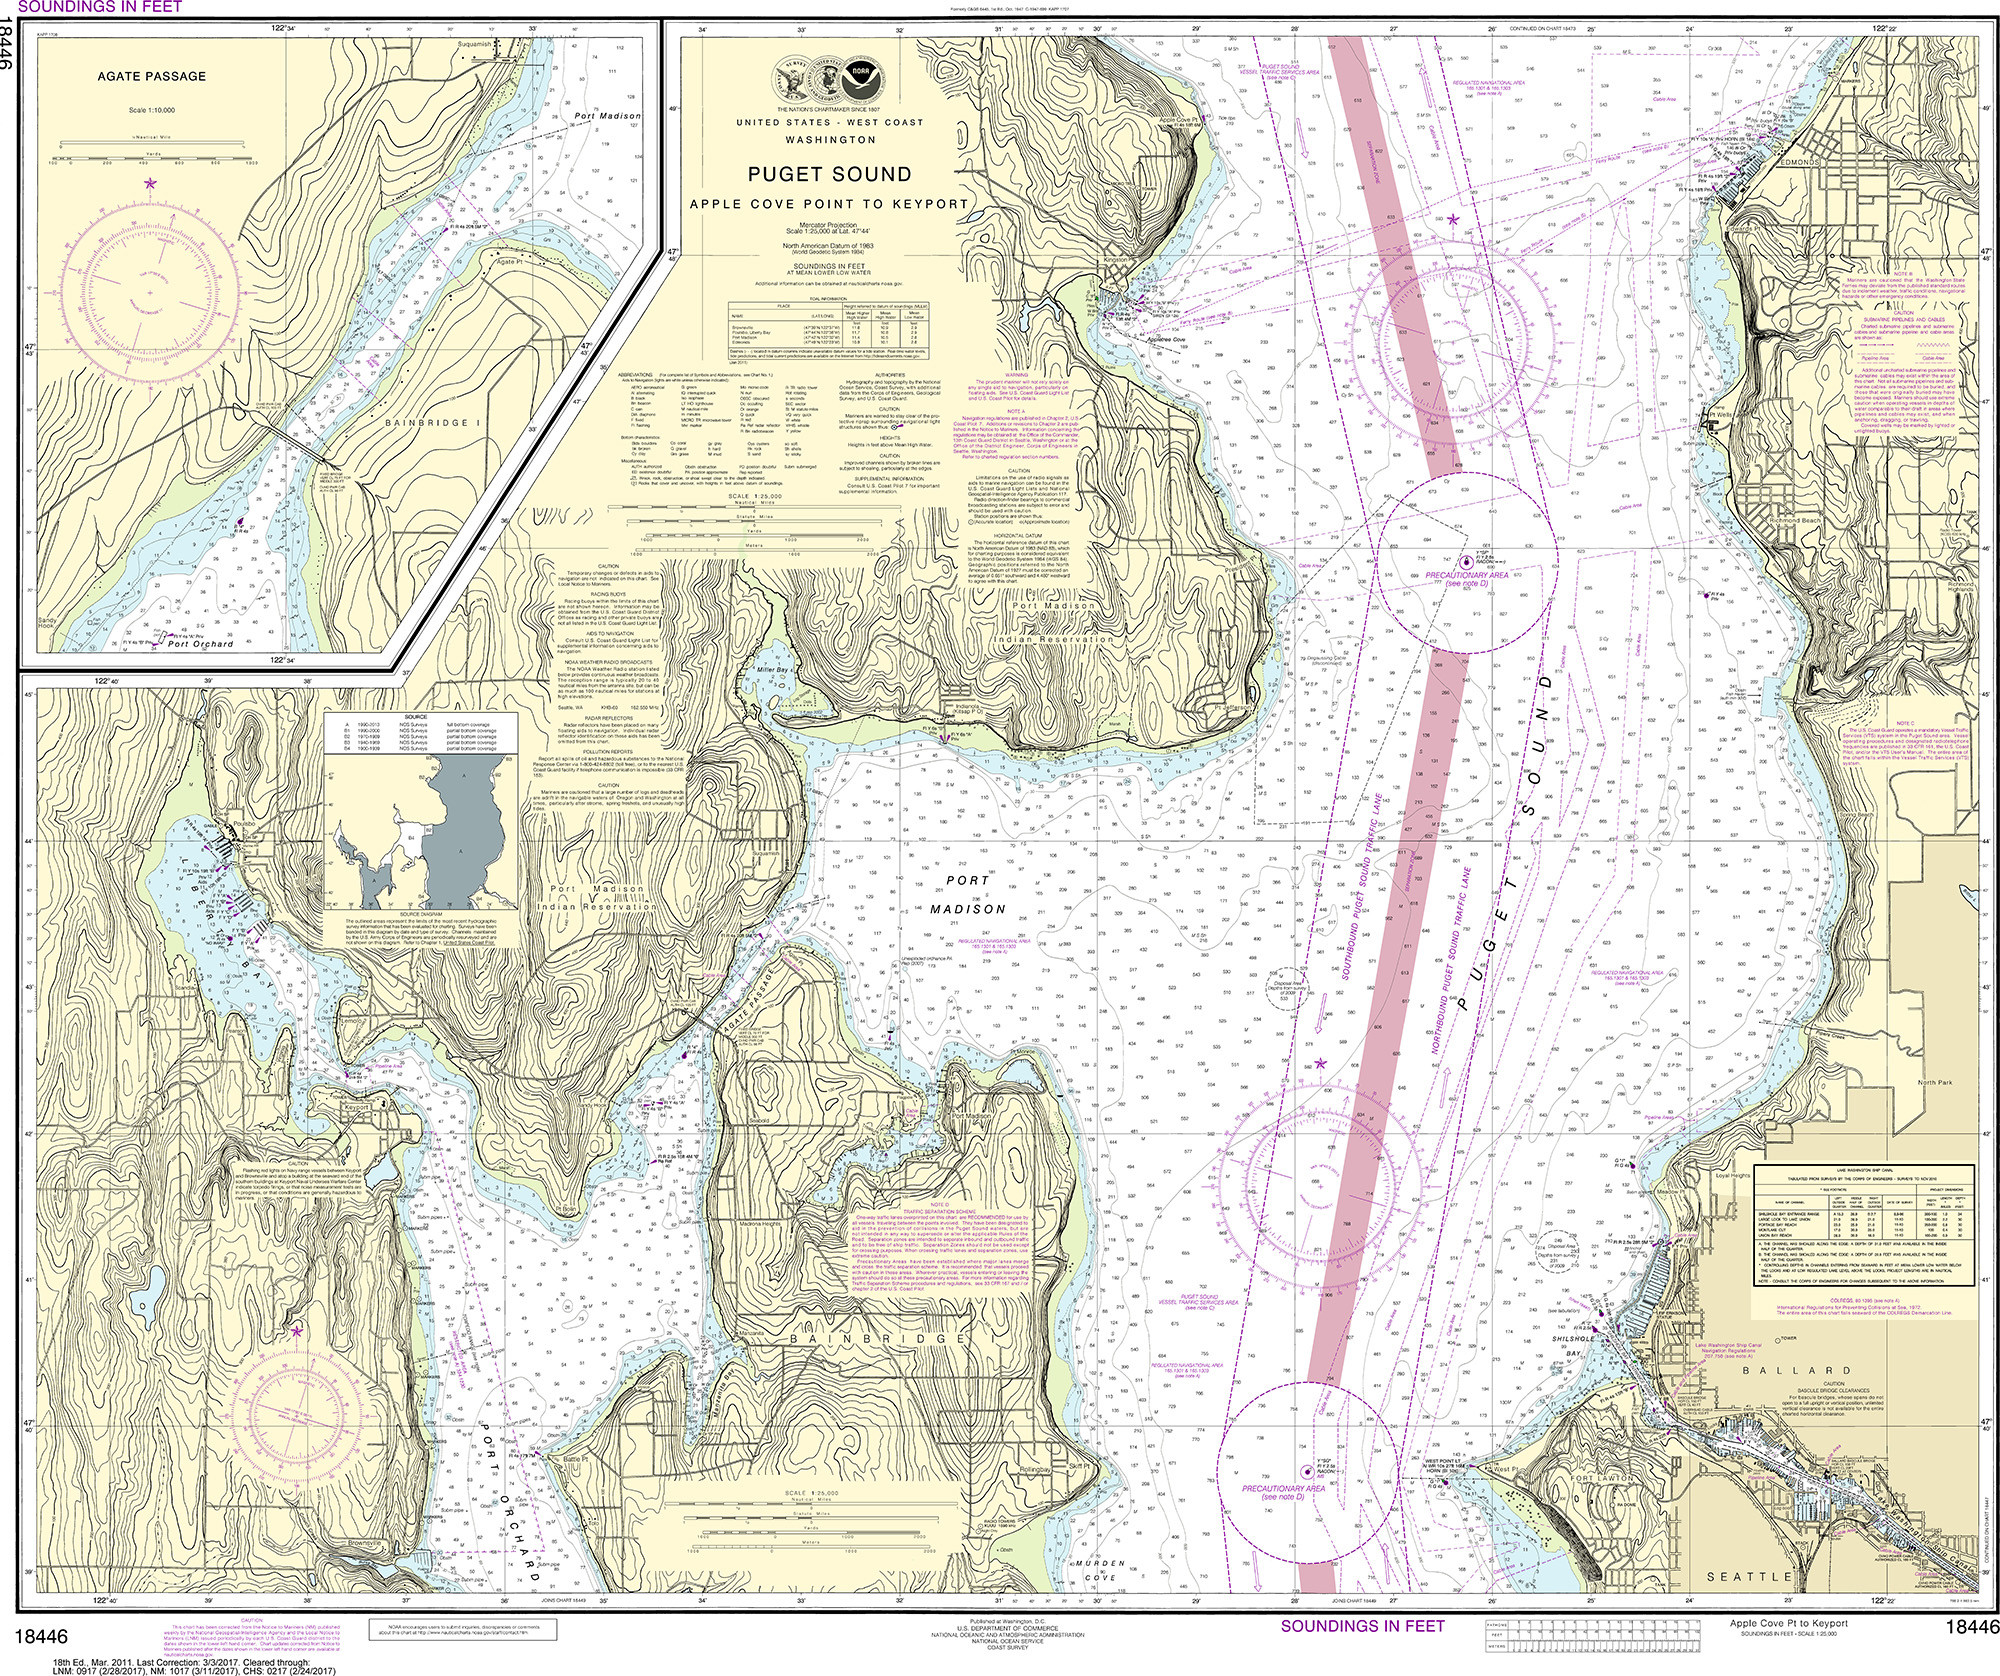 Noaa Nautical Chart 18446 Puget Sound Apple Cove Point To Keyport Agate Passage